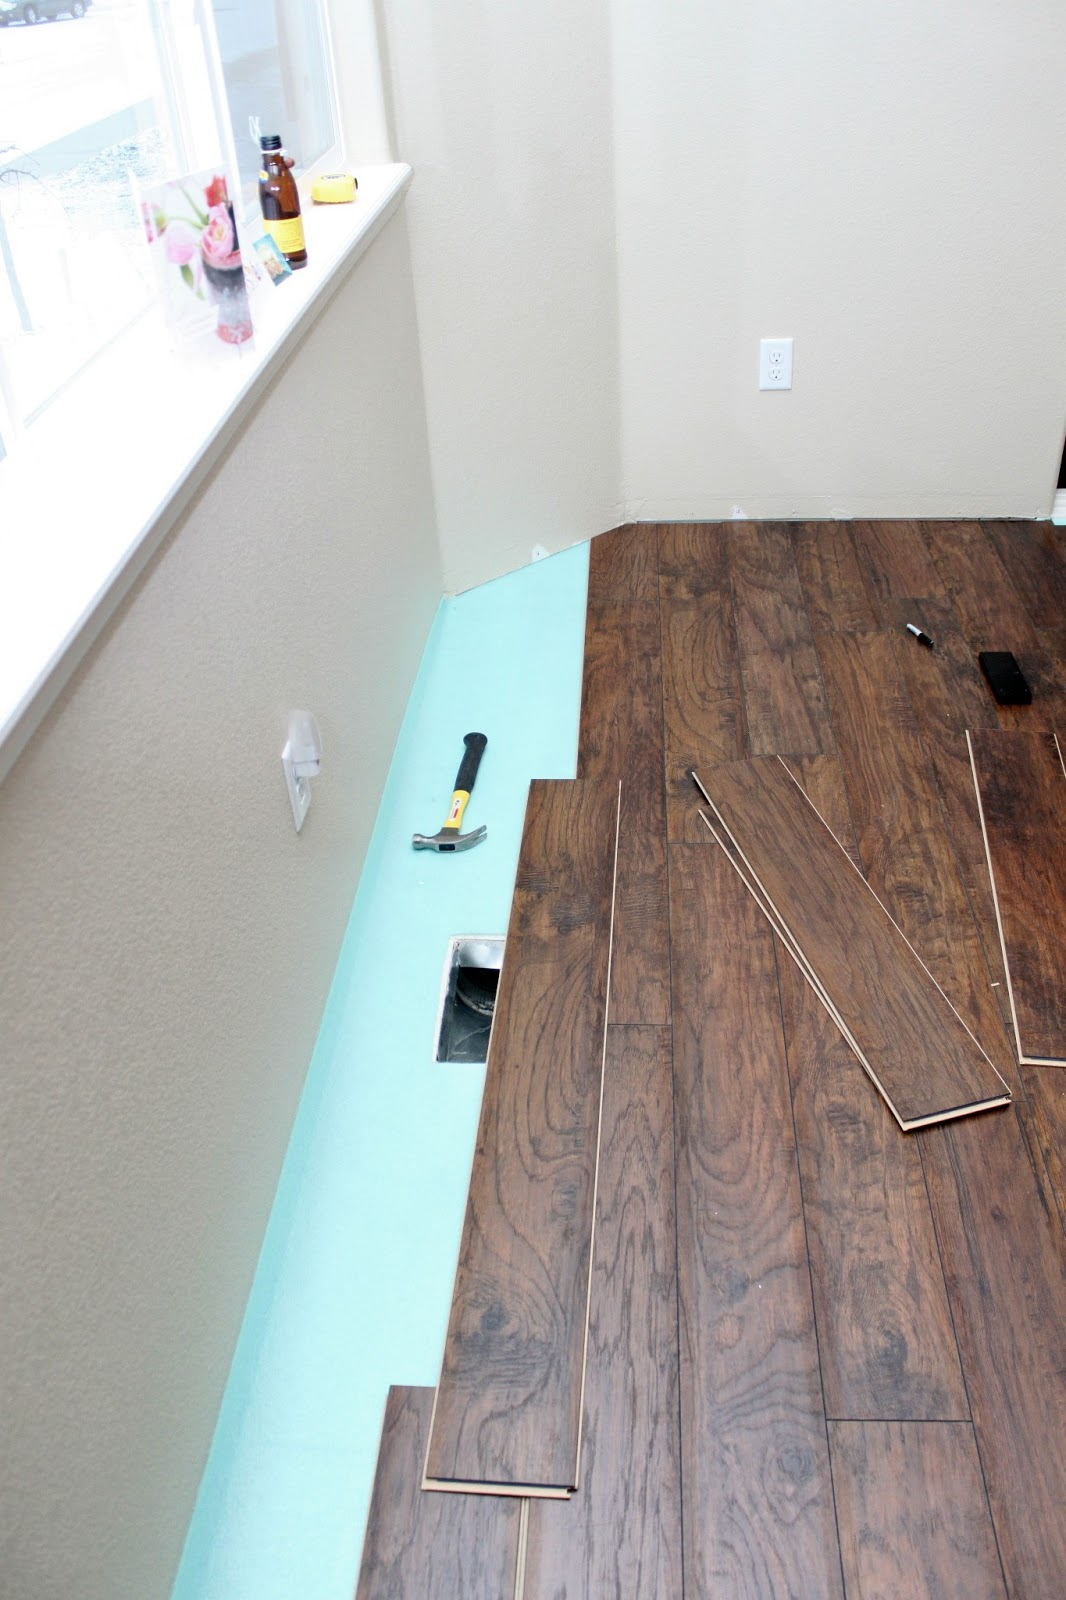 Our modern homestead diy laminate wood flooring project - Laminate or wood flooring ...